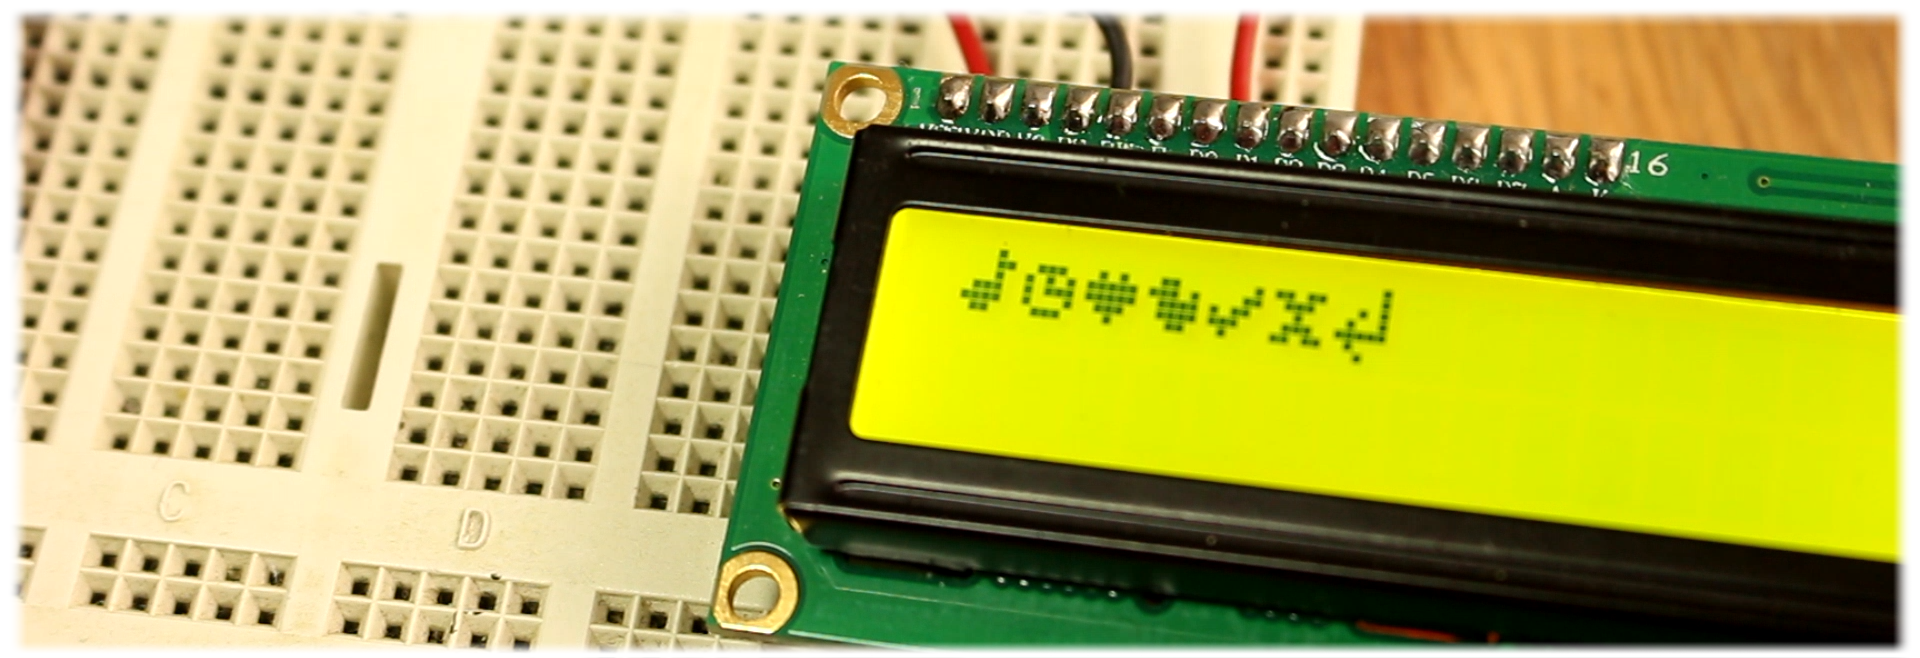 lcd special character Arduino